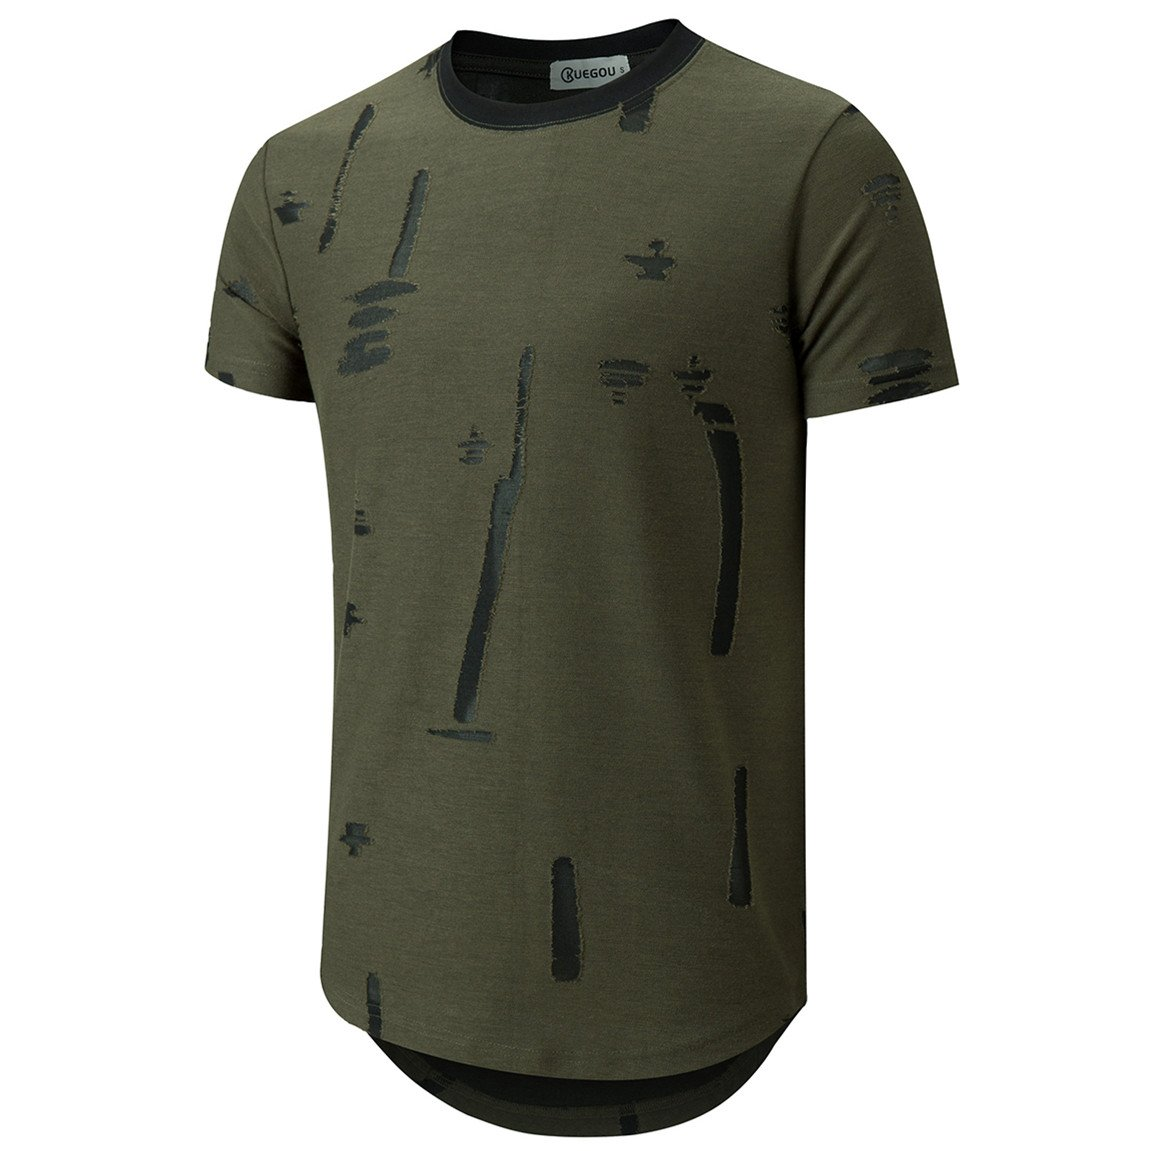 KLIEGOU Mens Hipster Hip Hop Round Hemline Hole T Shirt 1805 (Medium, ArmyGreen)